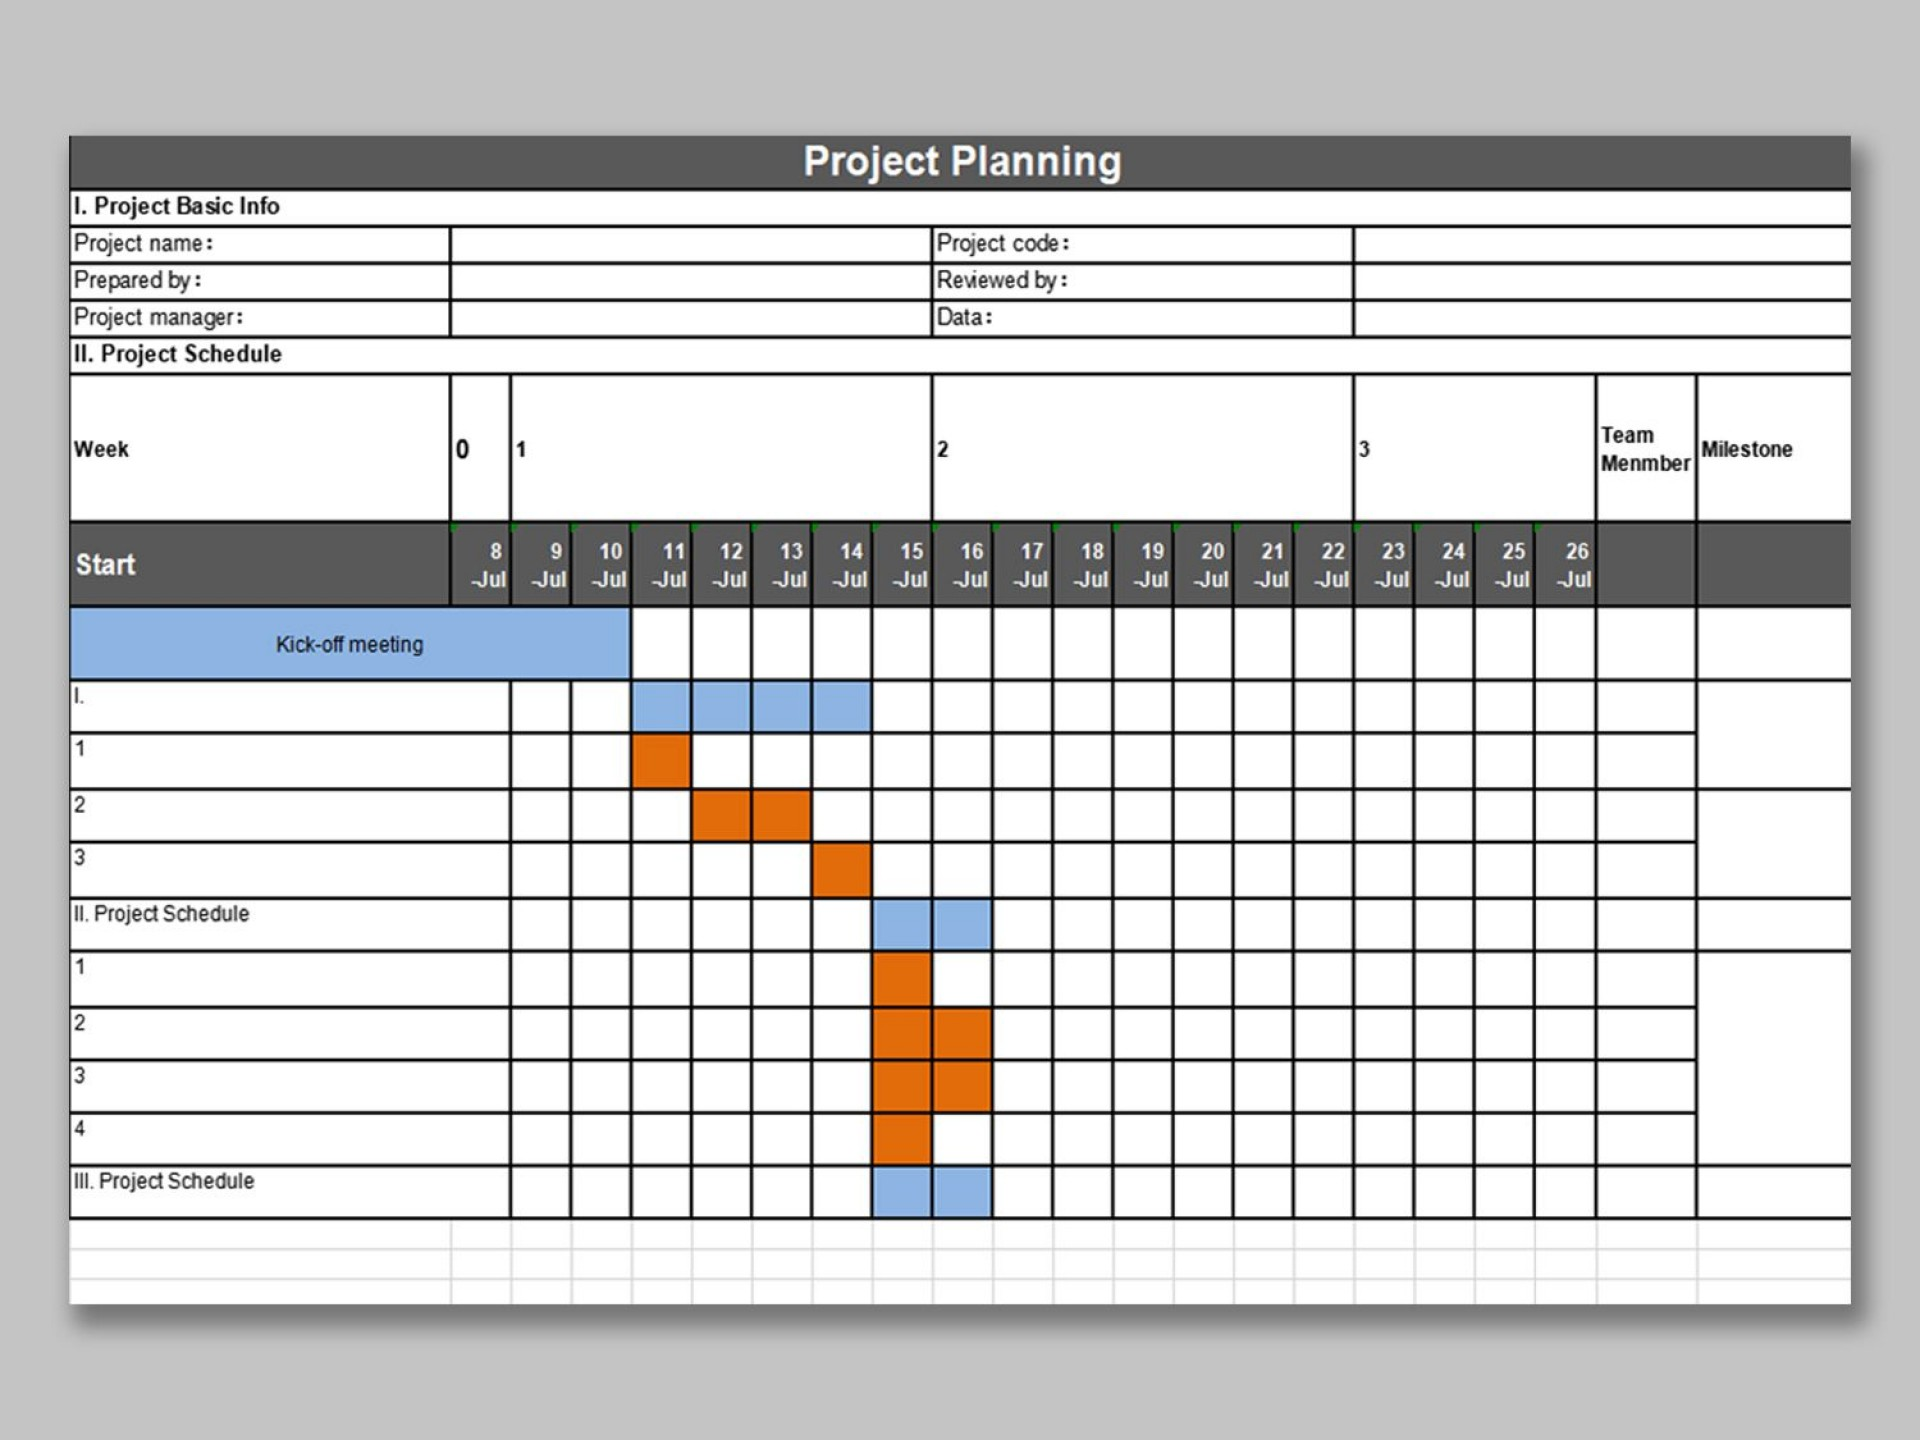 002 Frightening Project Management Template Free Download Image  Excel Website1920